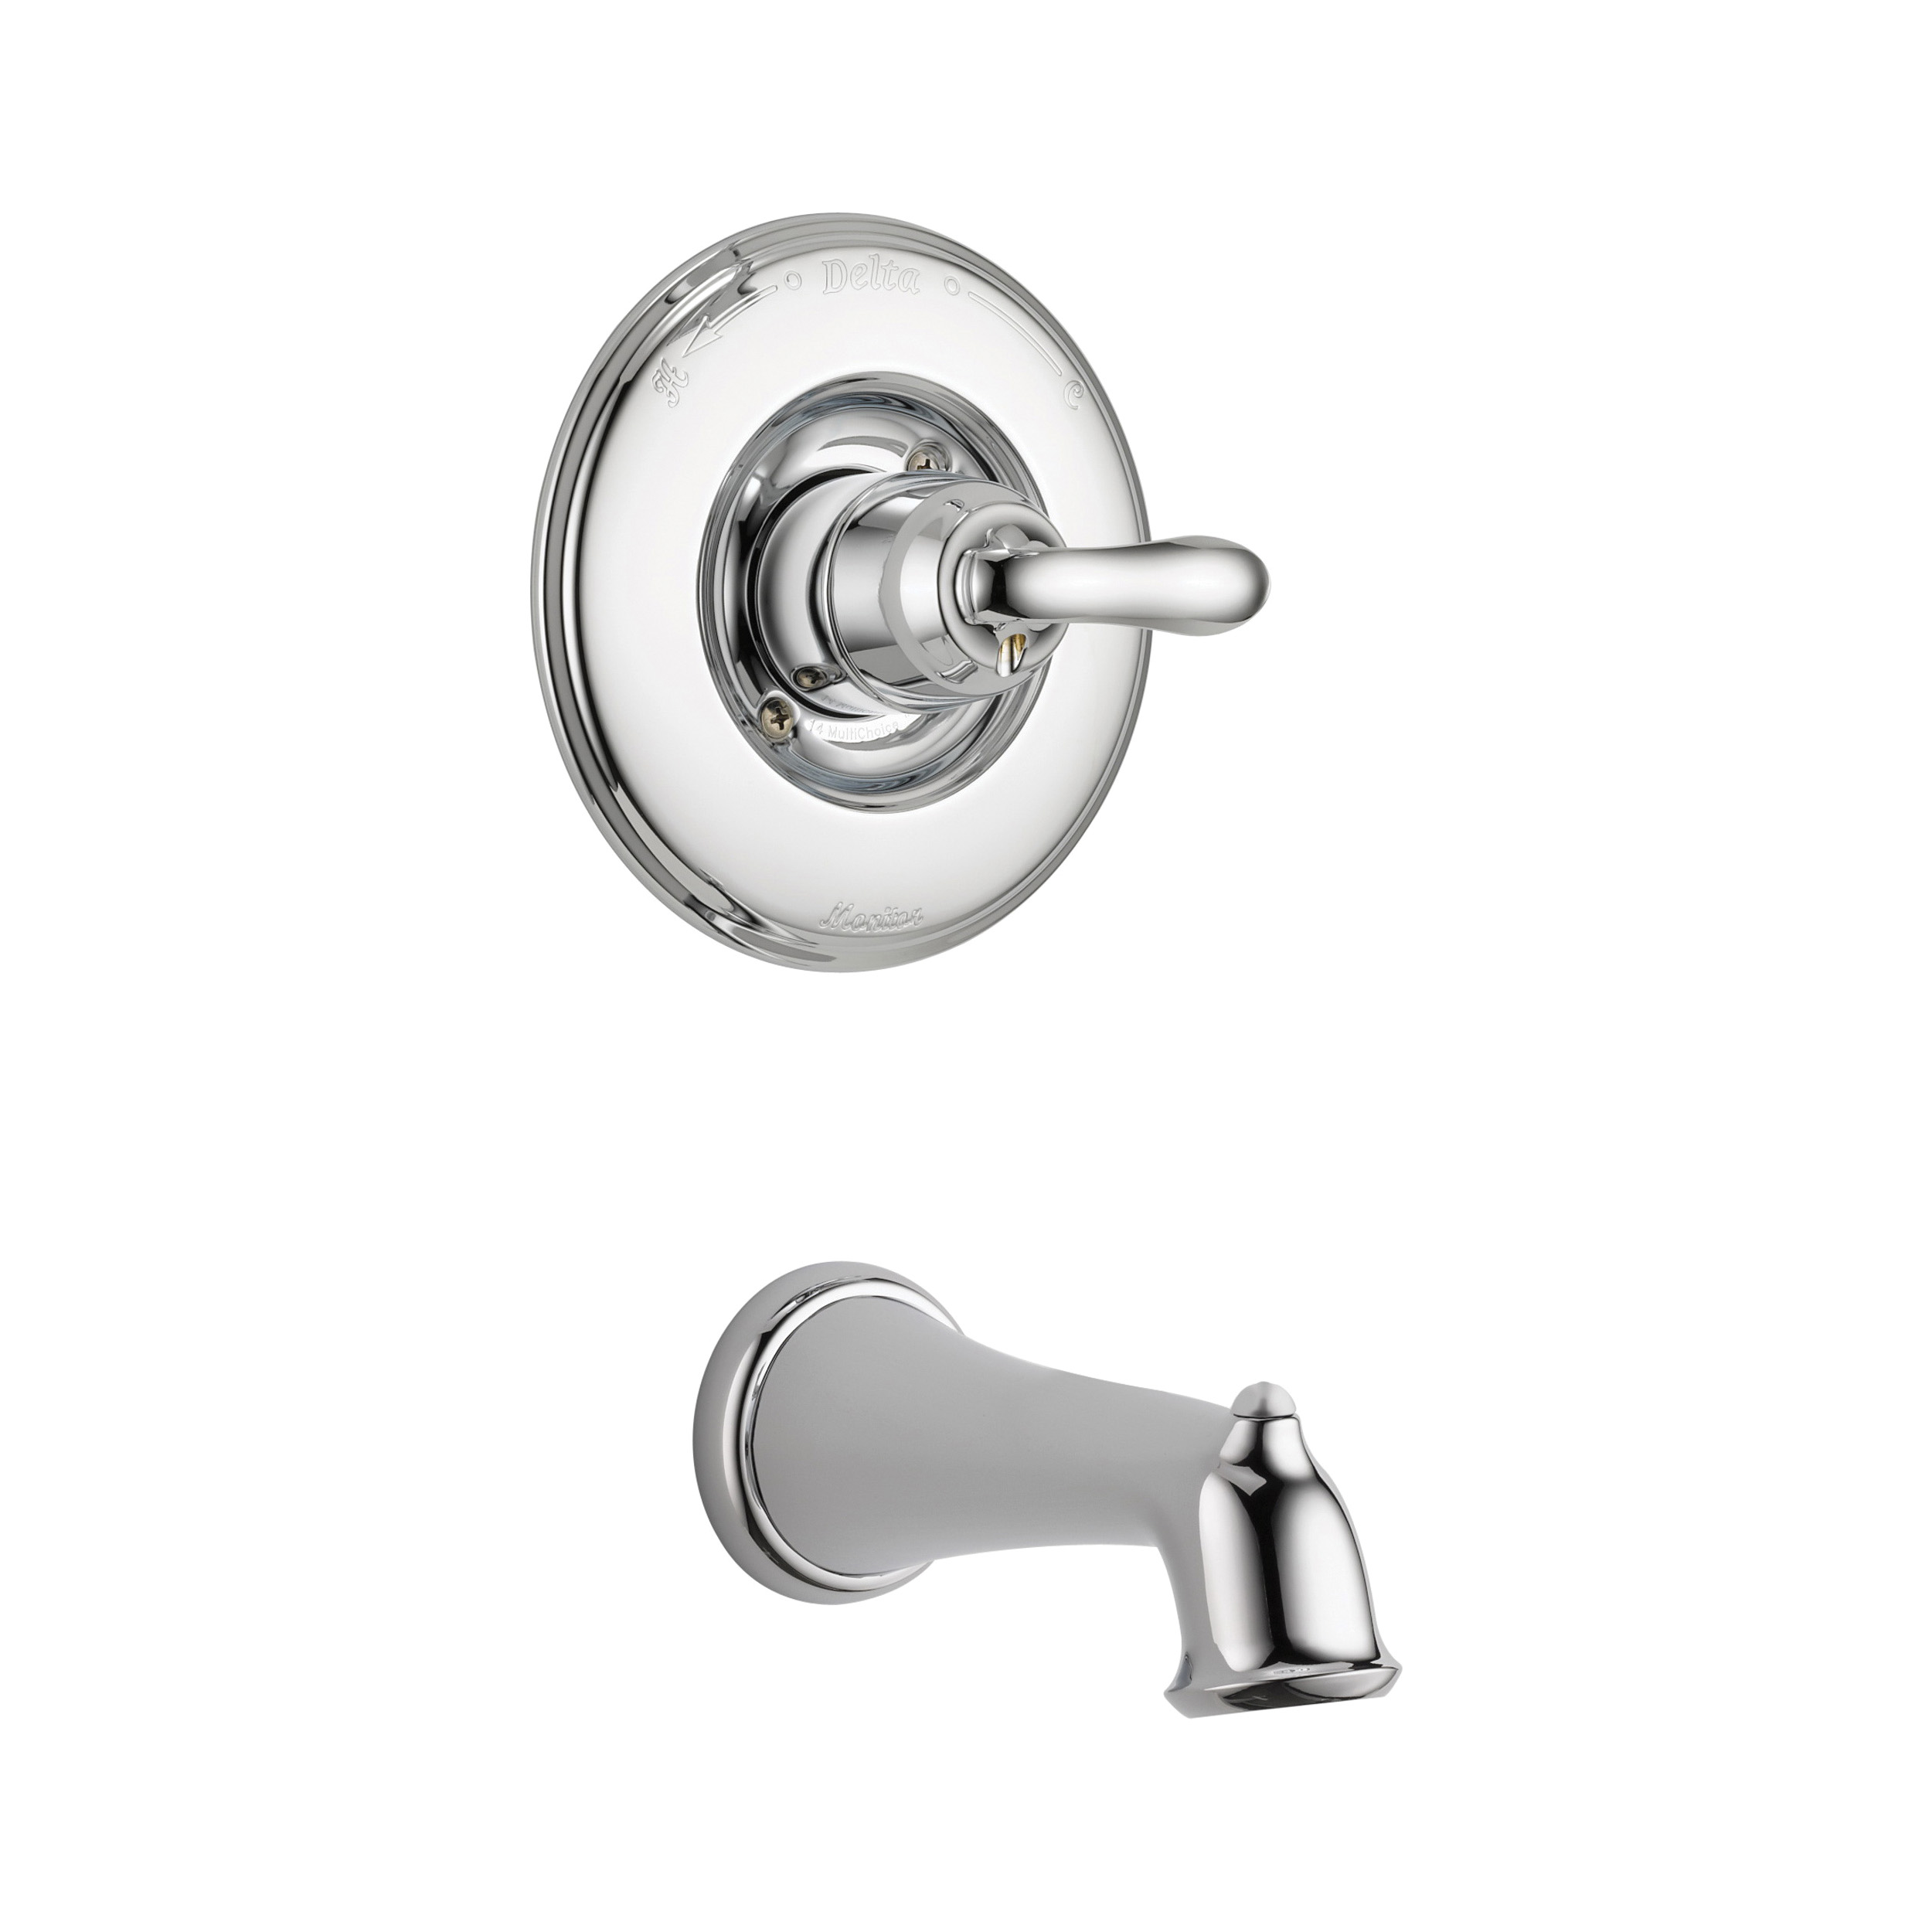 DELTA® T14194 Monitor® 14 1-Function Wall Mount Tub Trim, Linden™, 1.5 gpm Flow Rate, Polished Chrome, 1 Handles, Domestic, Commercial